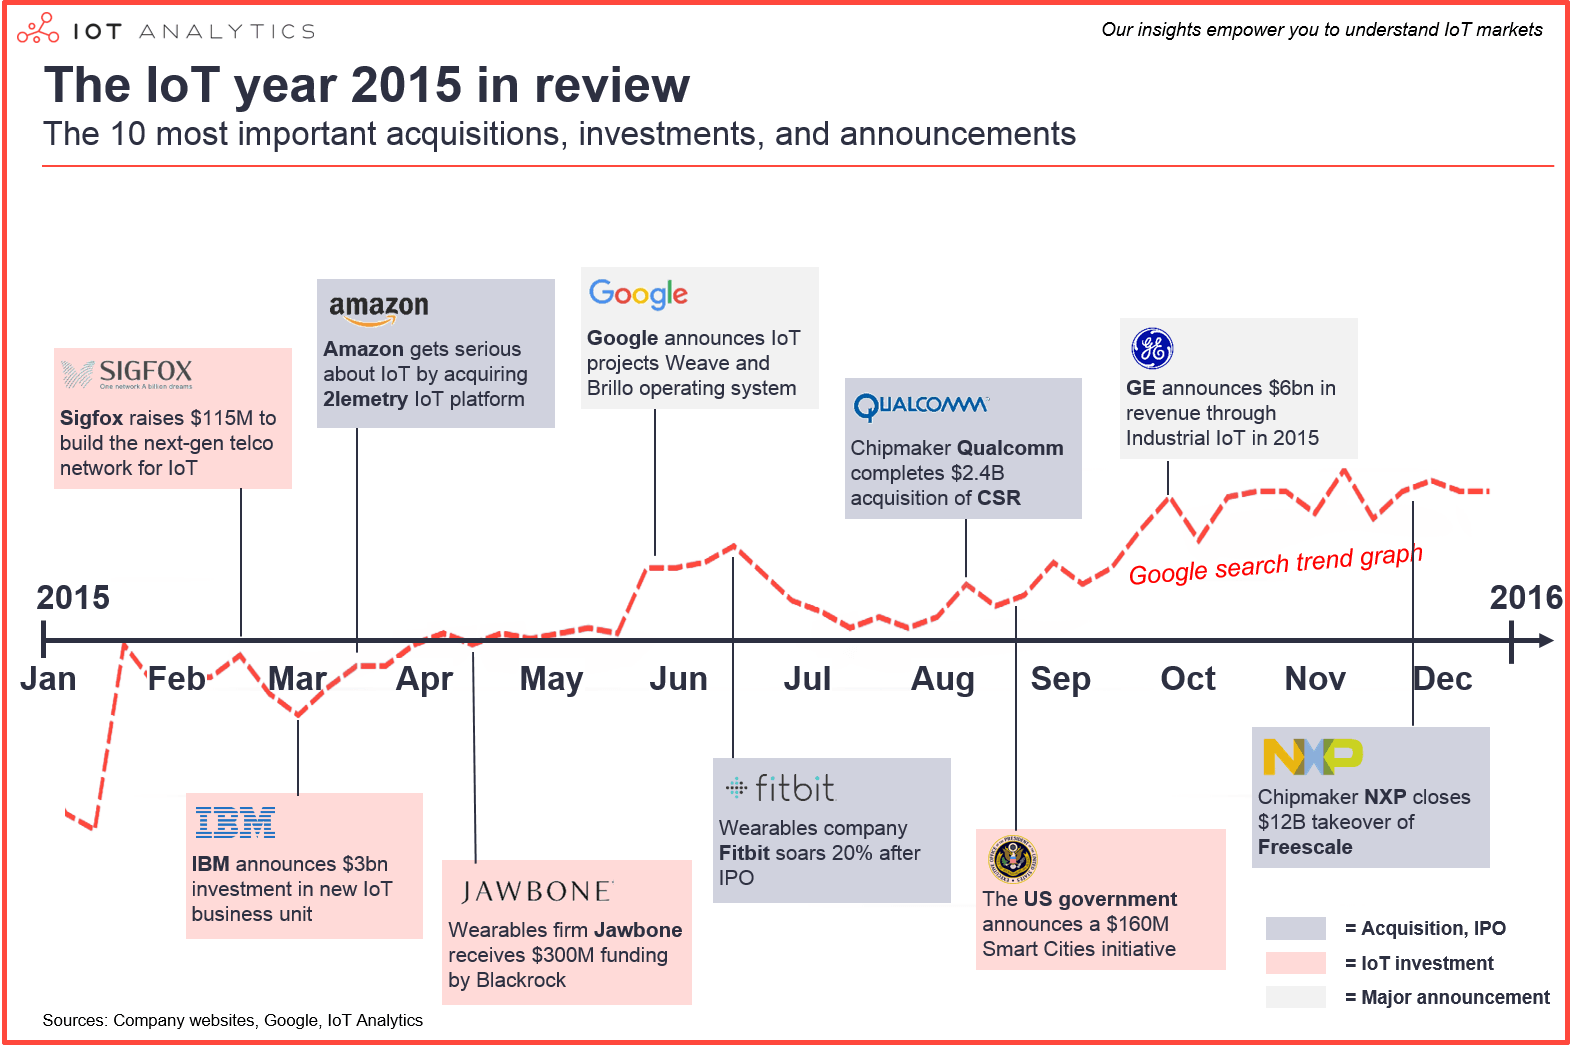 IoT 2015 year in review